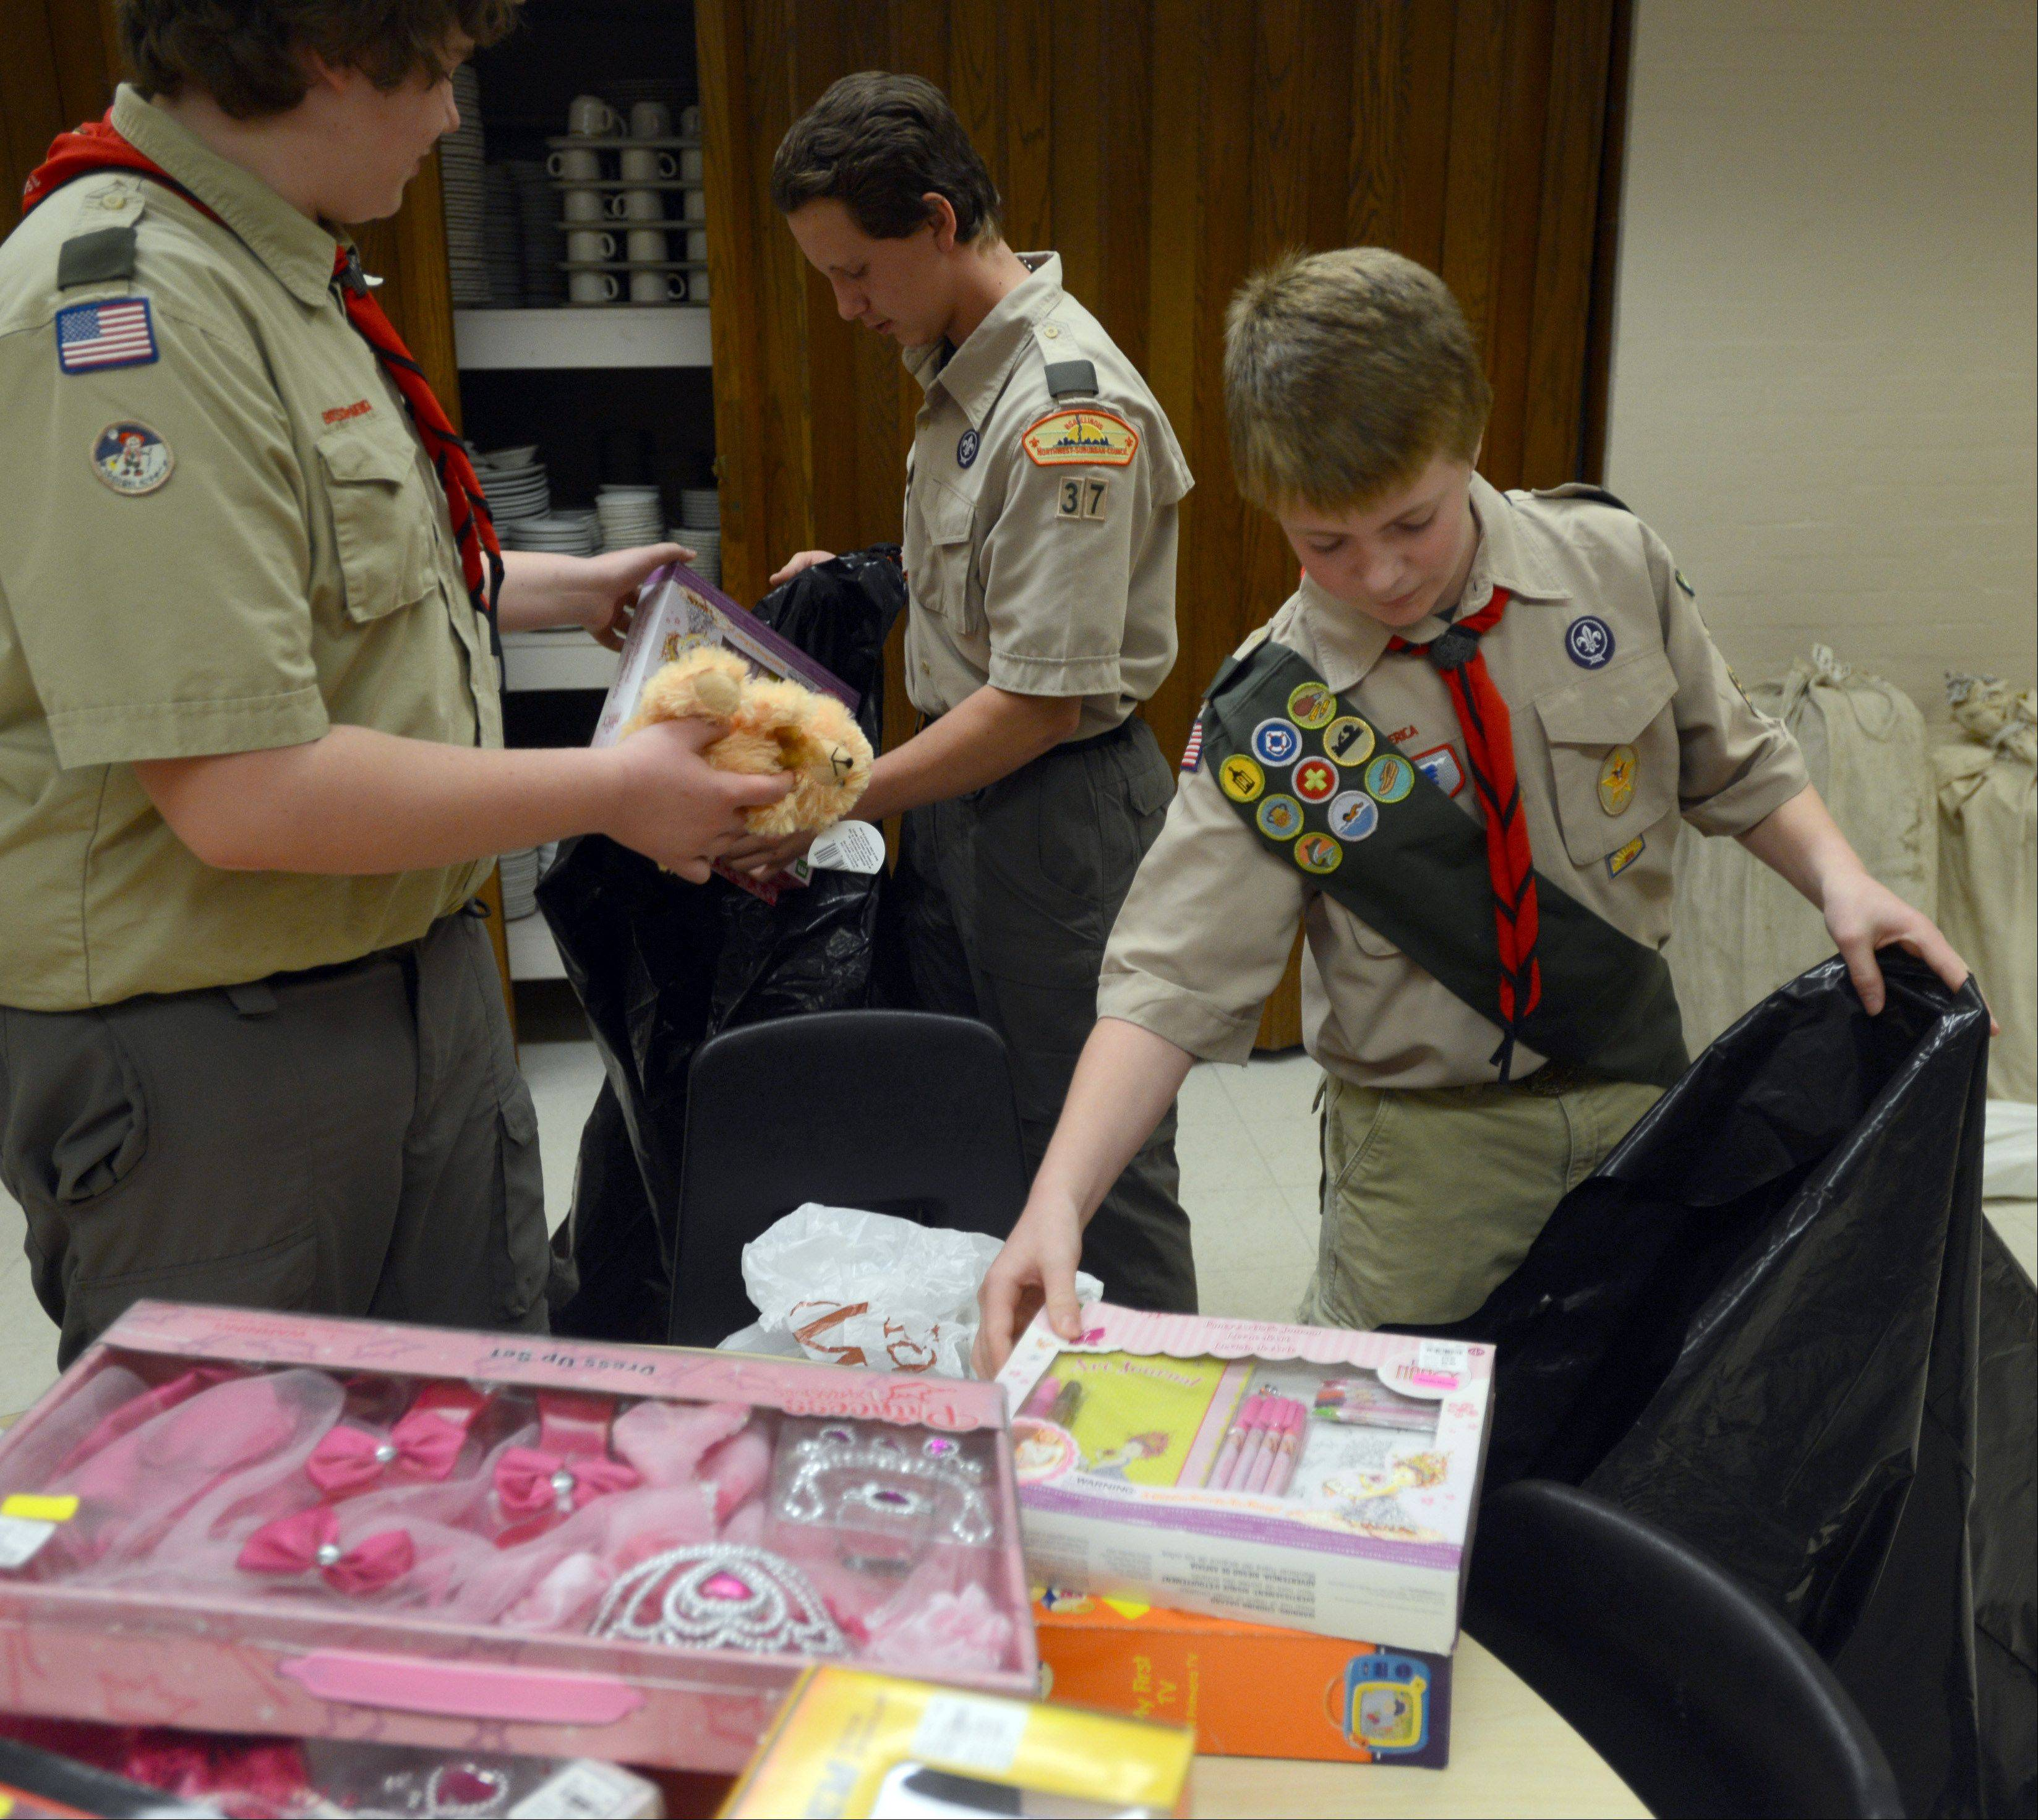 Troop 37 members from left, Arthur Gasey, 13, of Arlington Heights, Herby Savage, 14, of Schaumburg, and Max Kron, 14, of Mount Prospect pack toys at St Peter Lutheran School in Arlington Heights on Monday night. Troop 37 works with The 100 Percent Foundation to secure the toys.